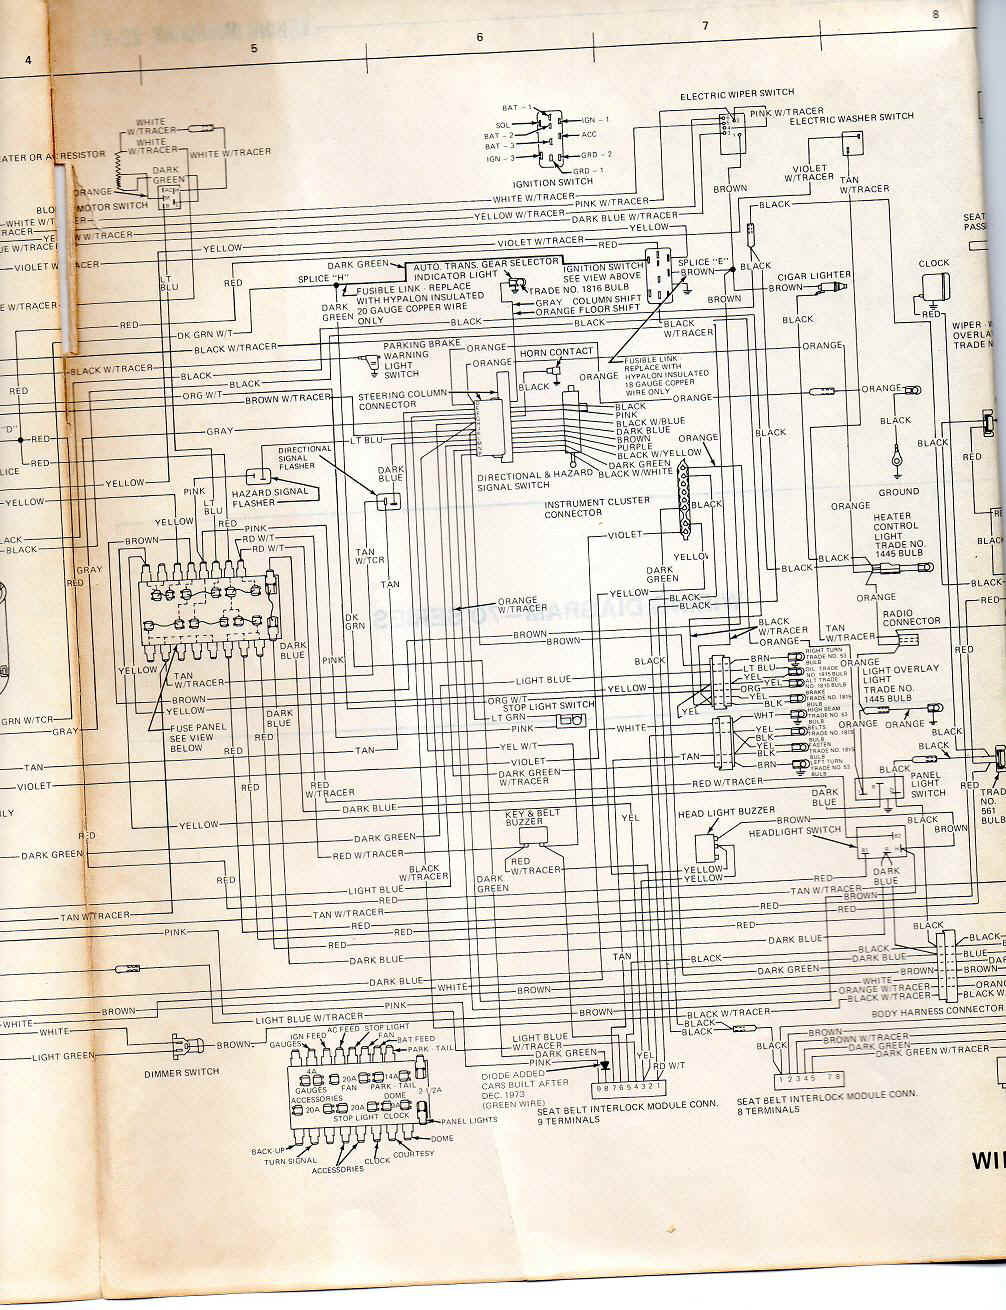 74 javelin wiring harness 2 troubleshooting AMC Ambassador at creativeand.co